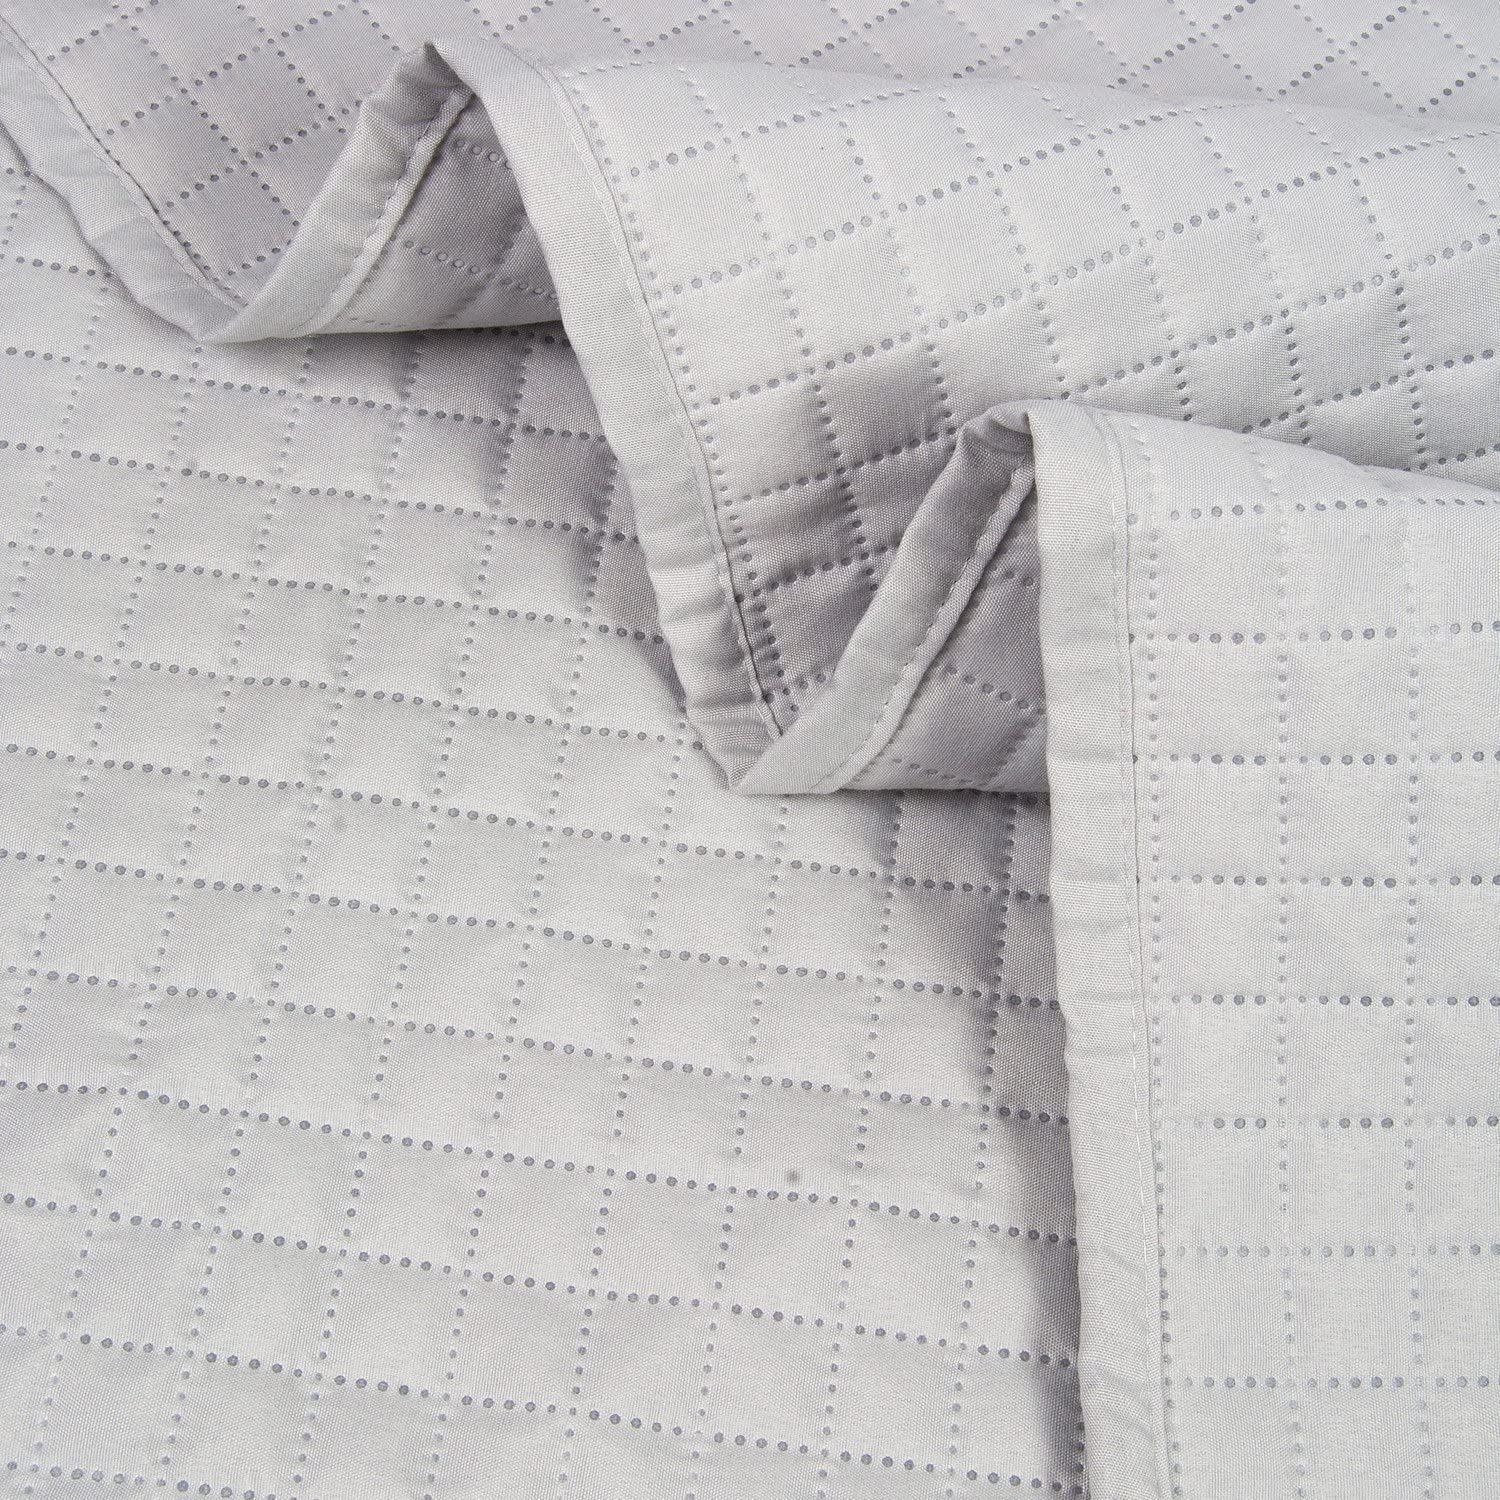 Twin HollyHOME Luxury Checkered Super Soft Solid Single Pinsonic Quilted Bed Quilt Bedspread Bed Cover Sage